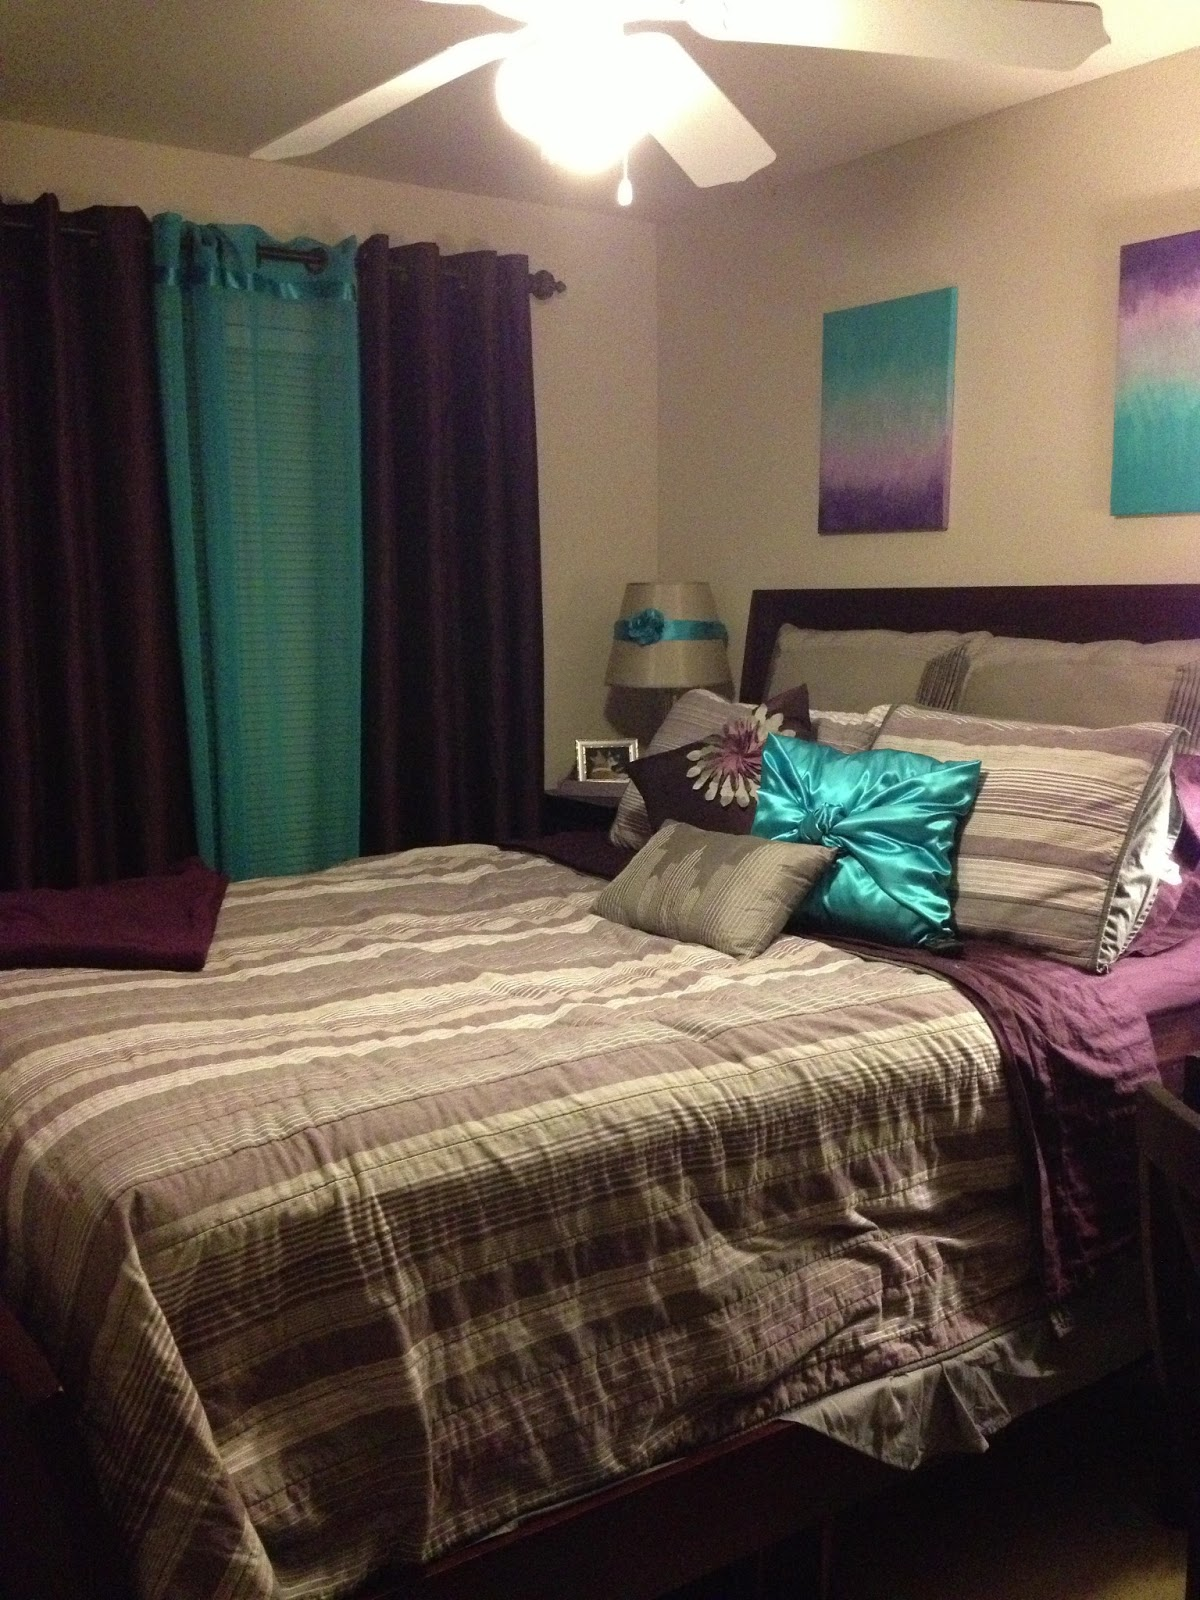 28 purple and teal bedroom affordable dark purple scheme purple and teal bedroom purple and teal bedroom samantha kamilos